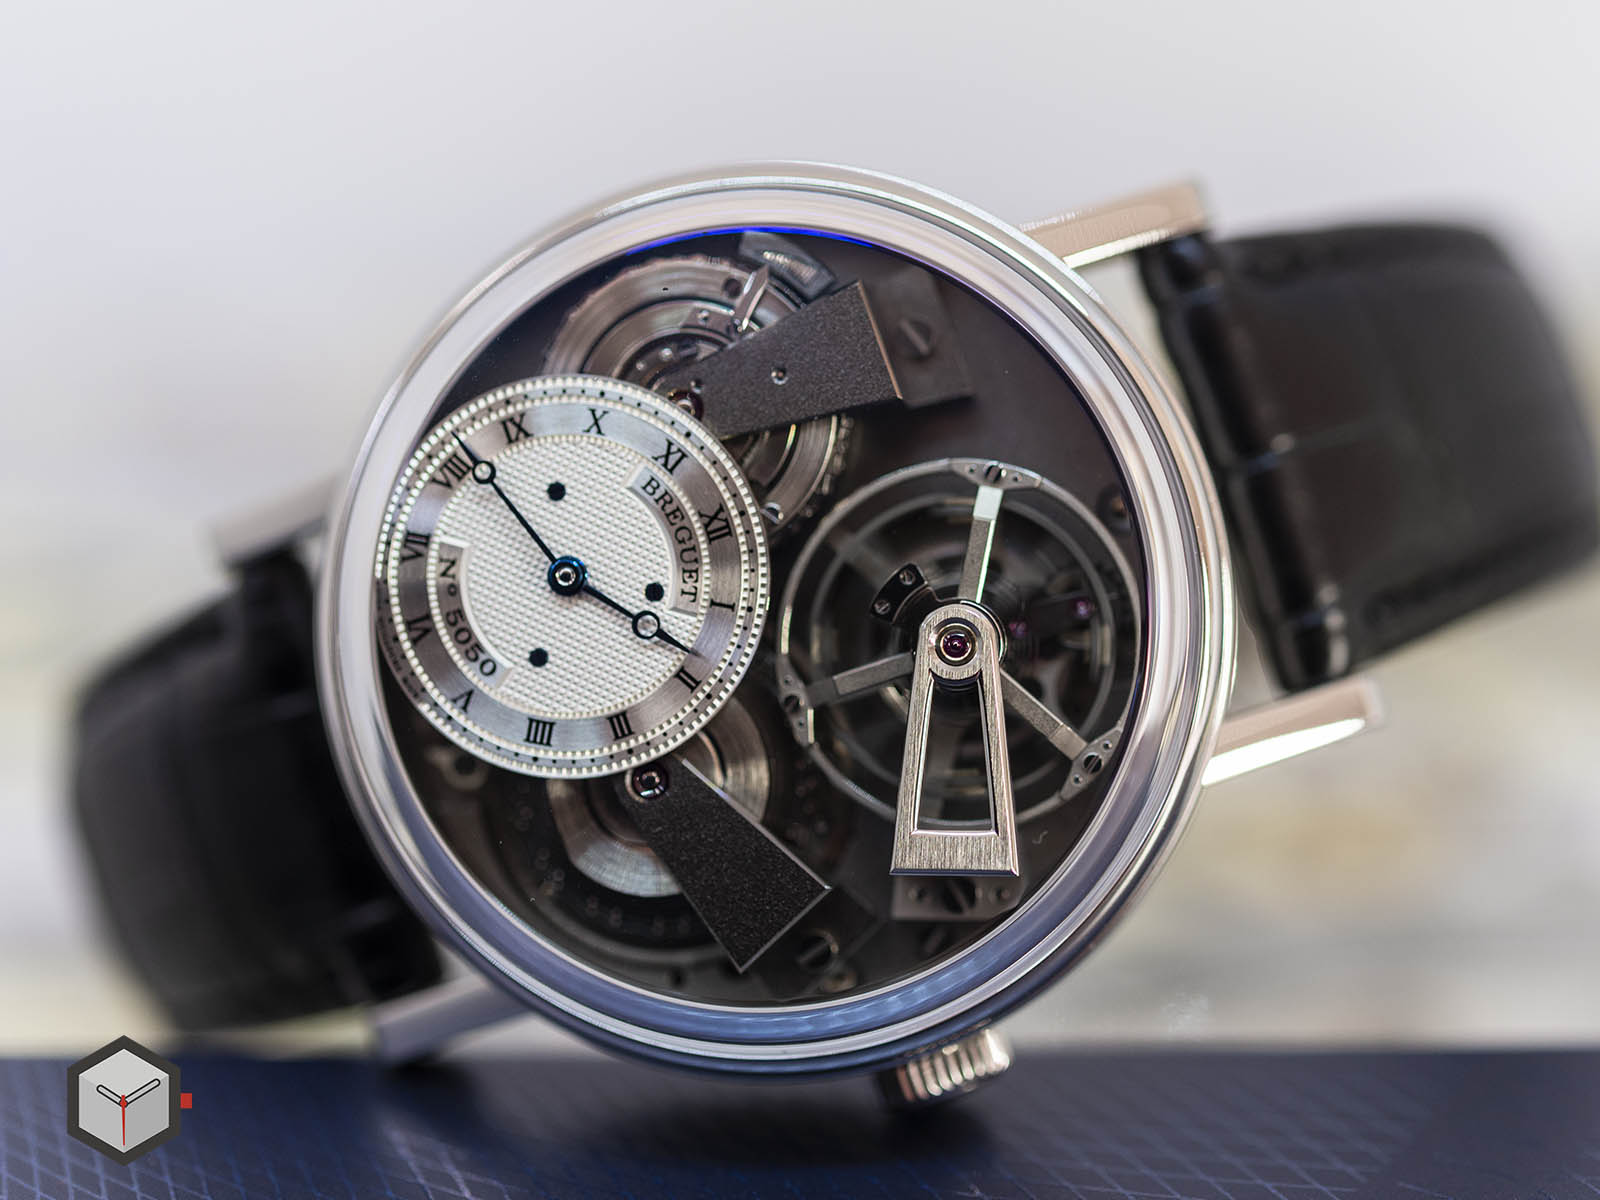 7047pt-11-9zu-breguet-tradition-fusee-tourbillon-4.jpg